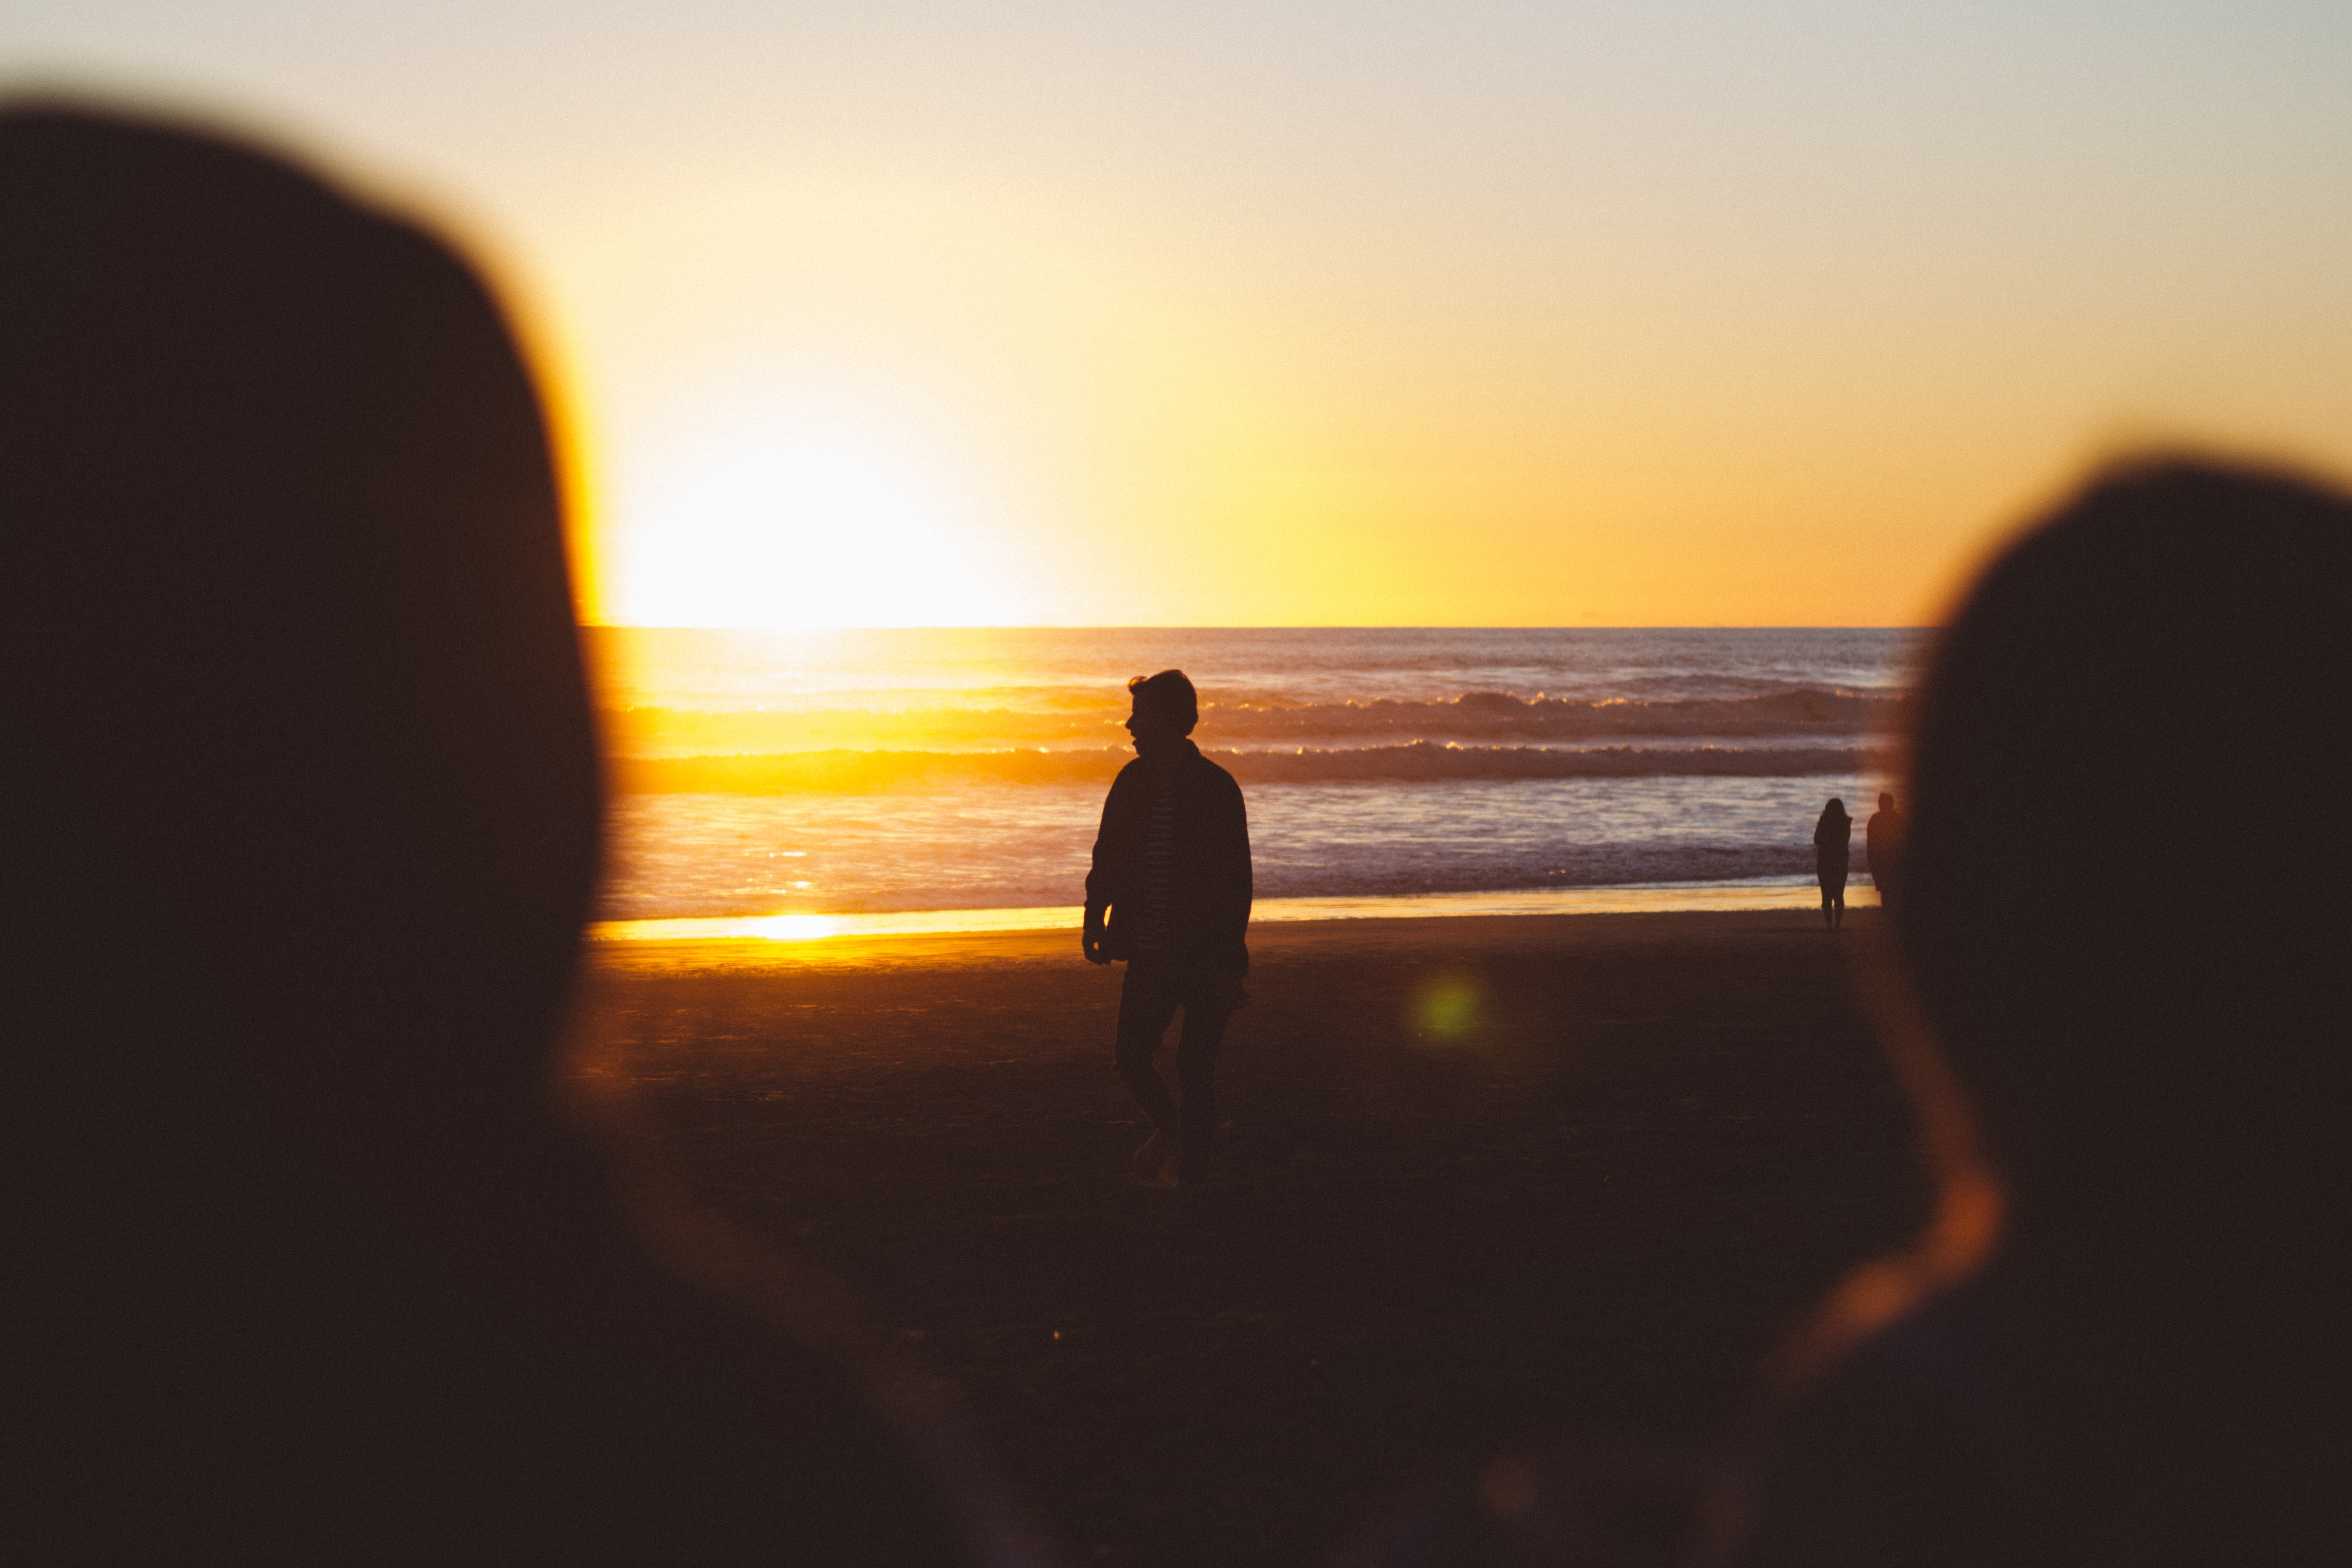 silhouette photo of man standing near seashore at sunset